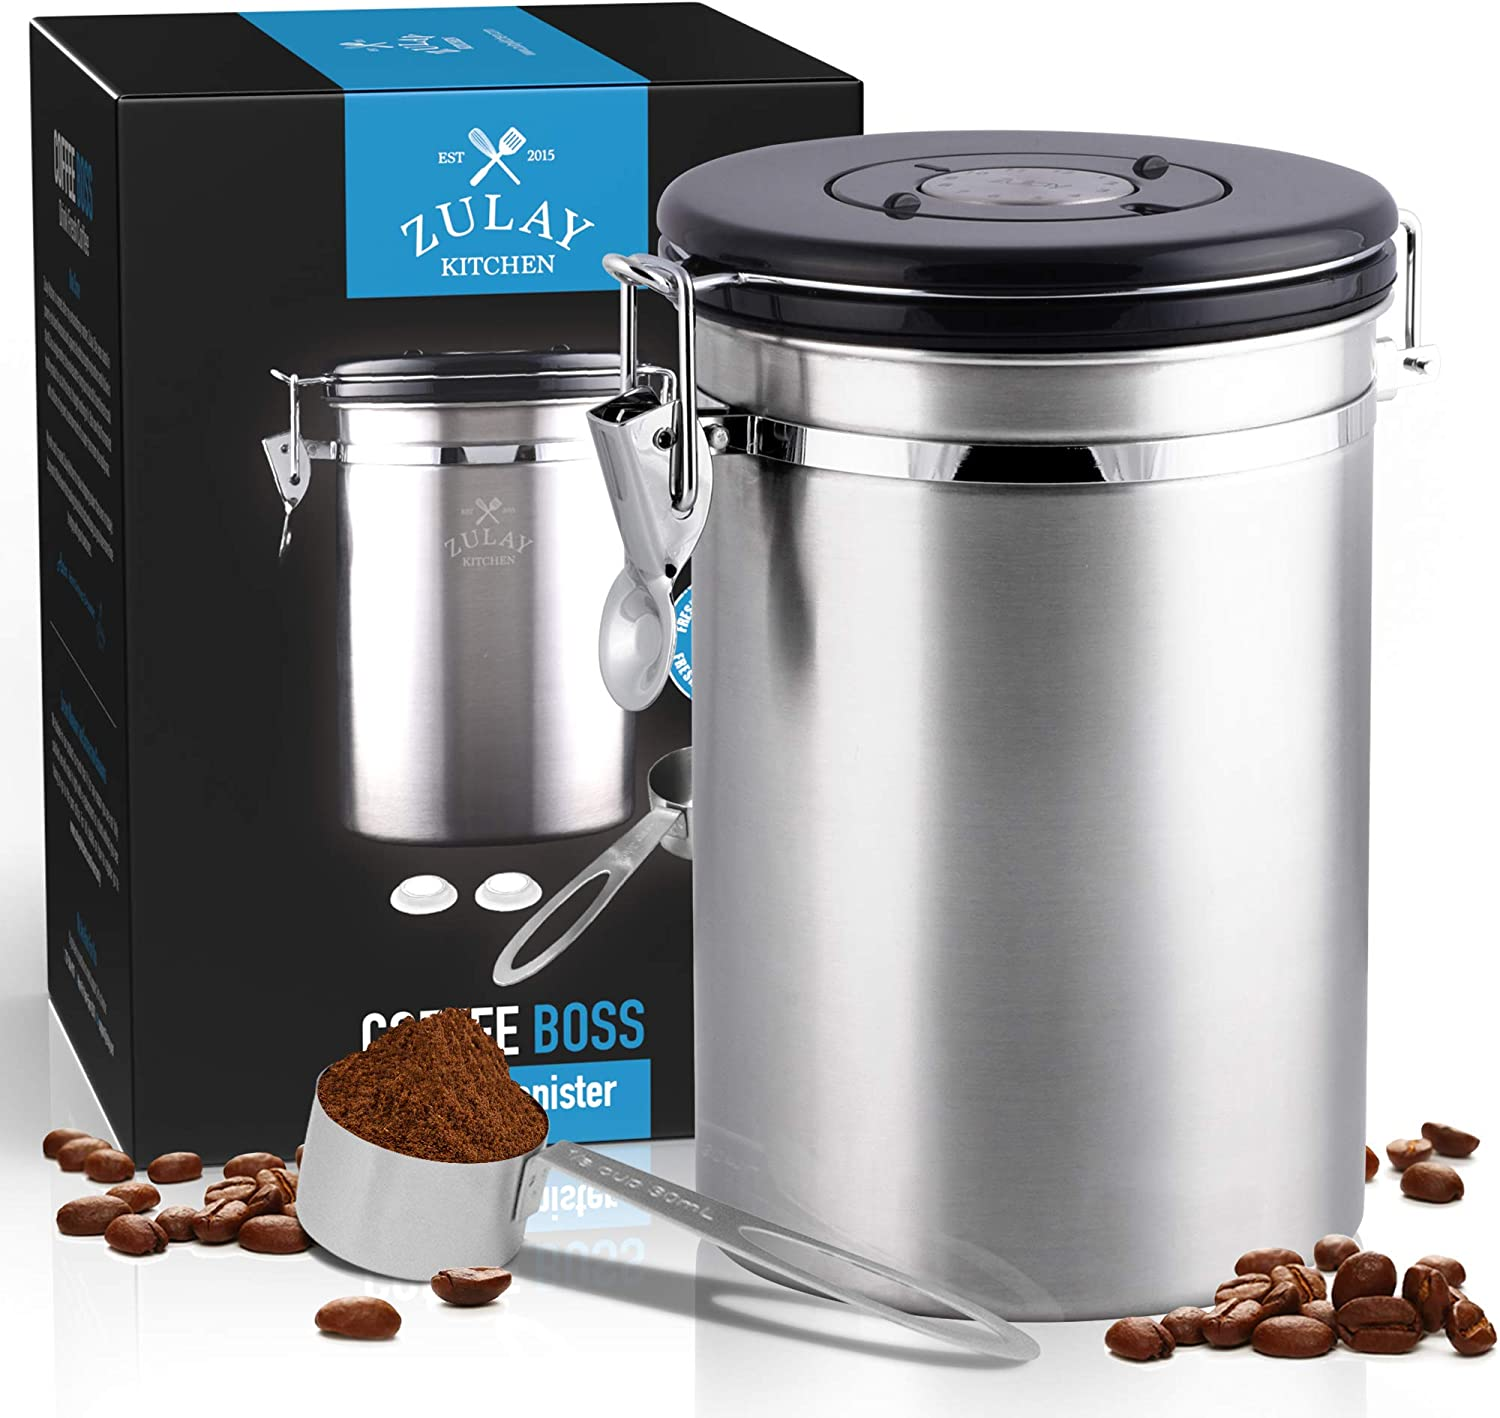 Stainless Steel Coffee Storage Canister with Scoop